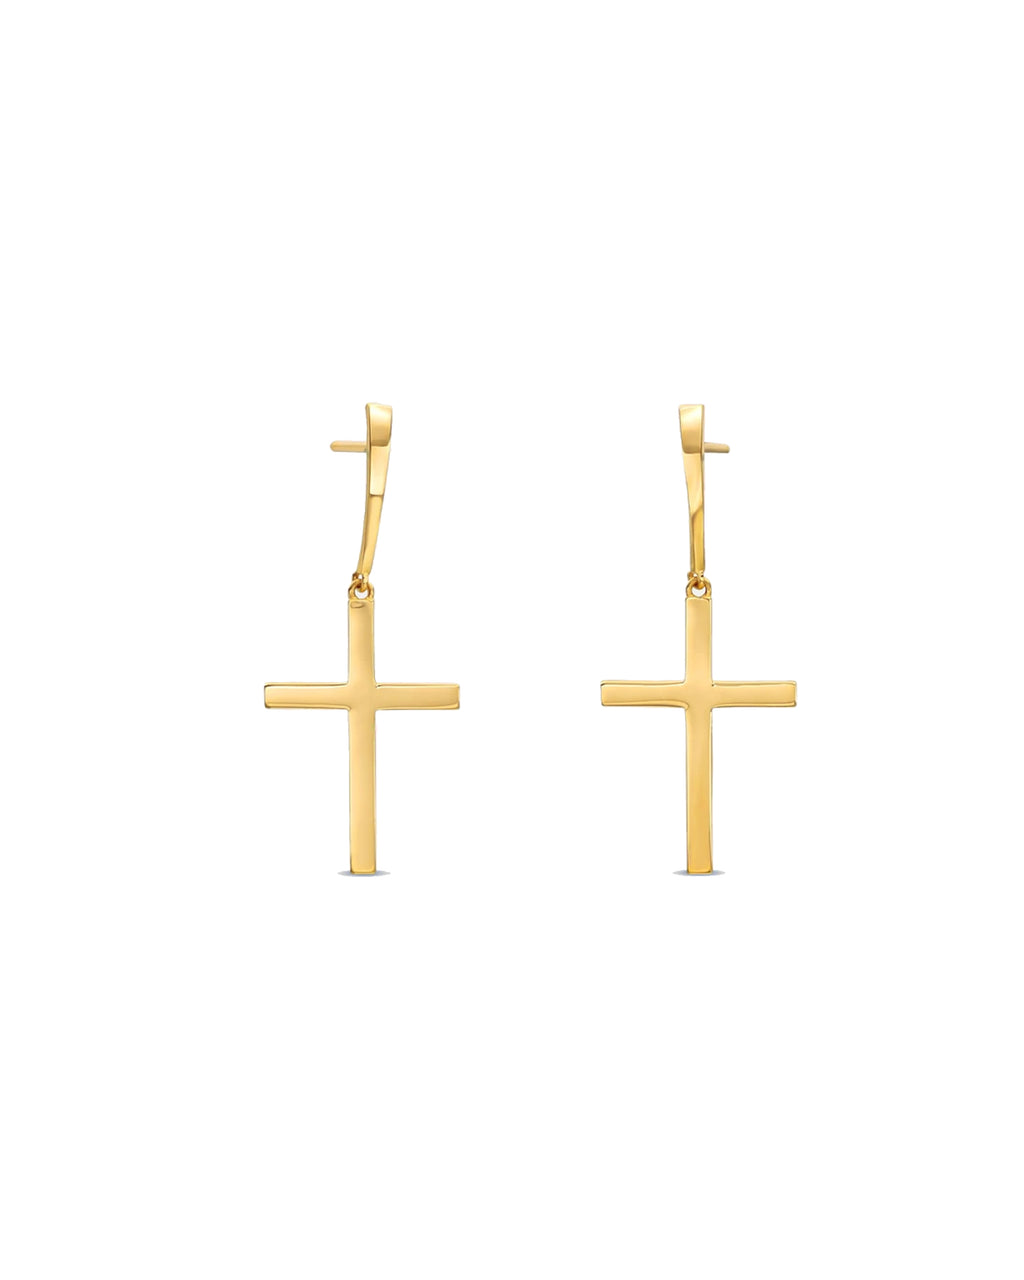 NME1004 - 14k Holy Cross Dangle Earrings - accessories - fine jewelry - These 14-karat solid yellow gold cross post earrings fit comfortably to the ears. Crosses measure to 50 mm.